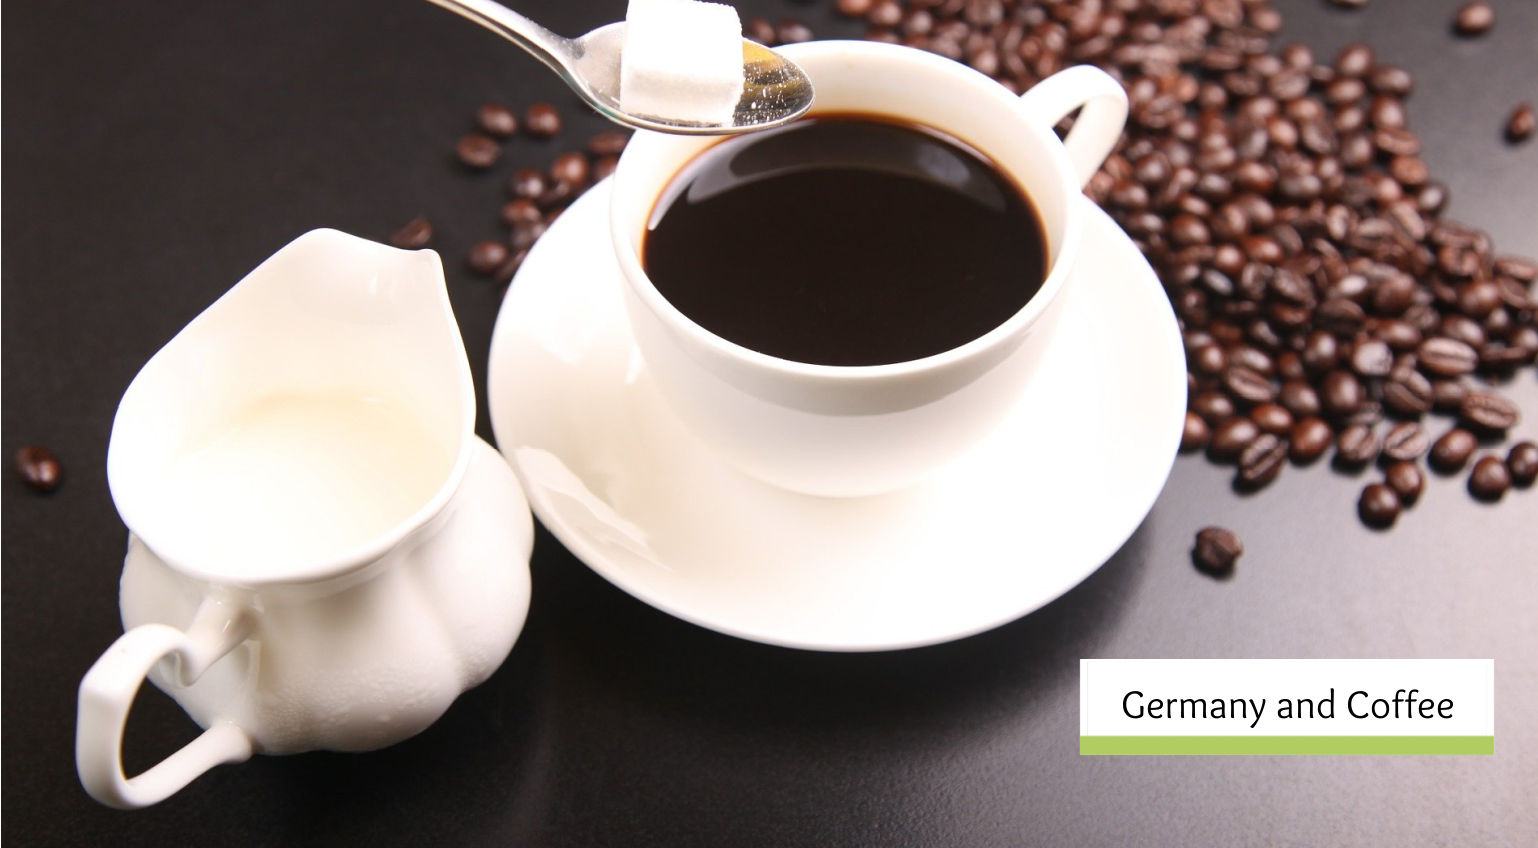 Germany and Coffee- Coffee Culture and History of German Coffee